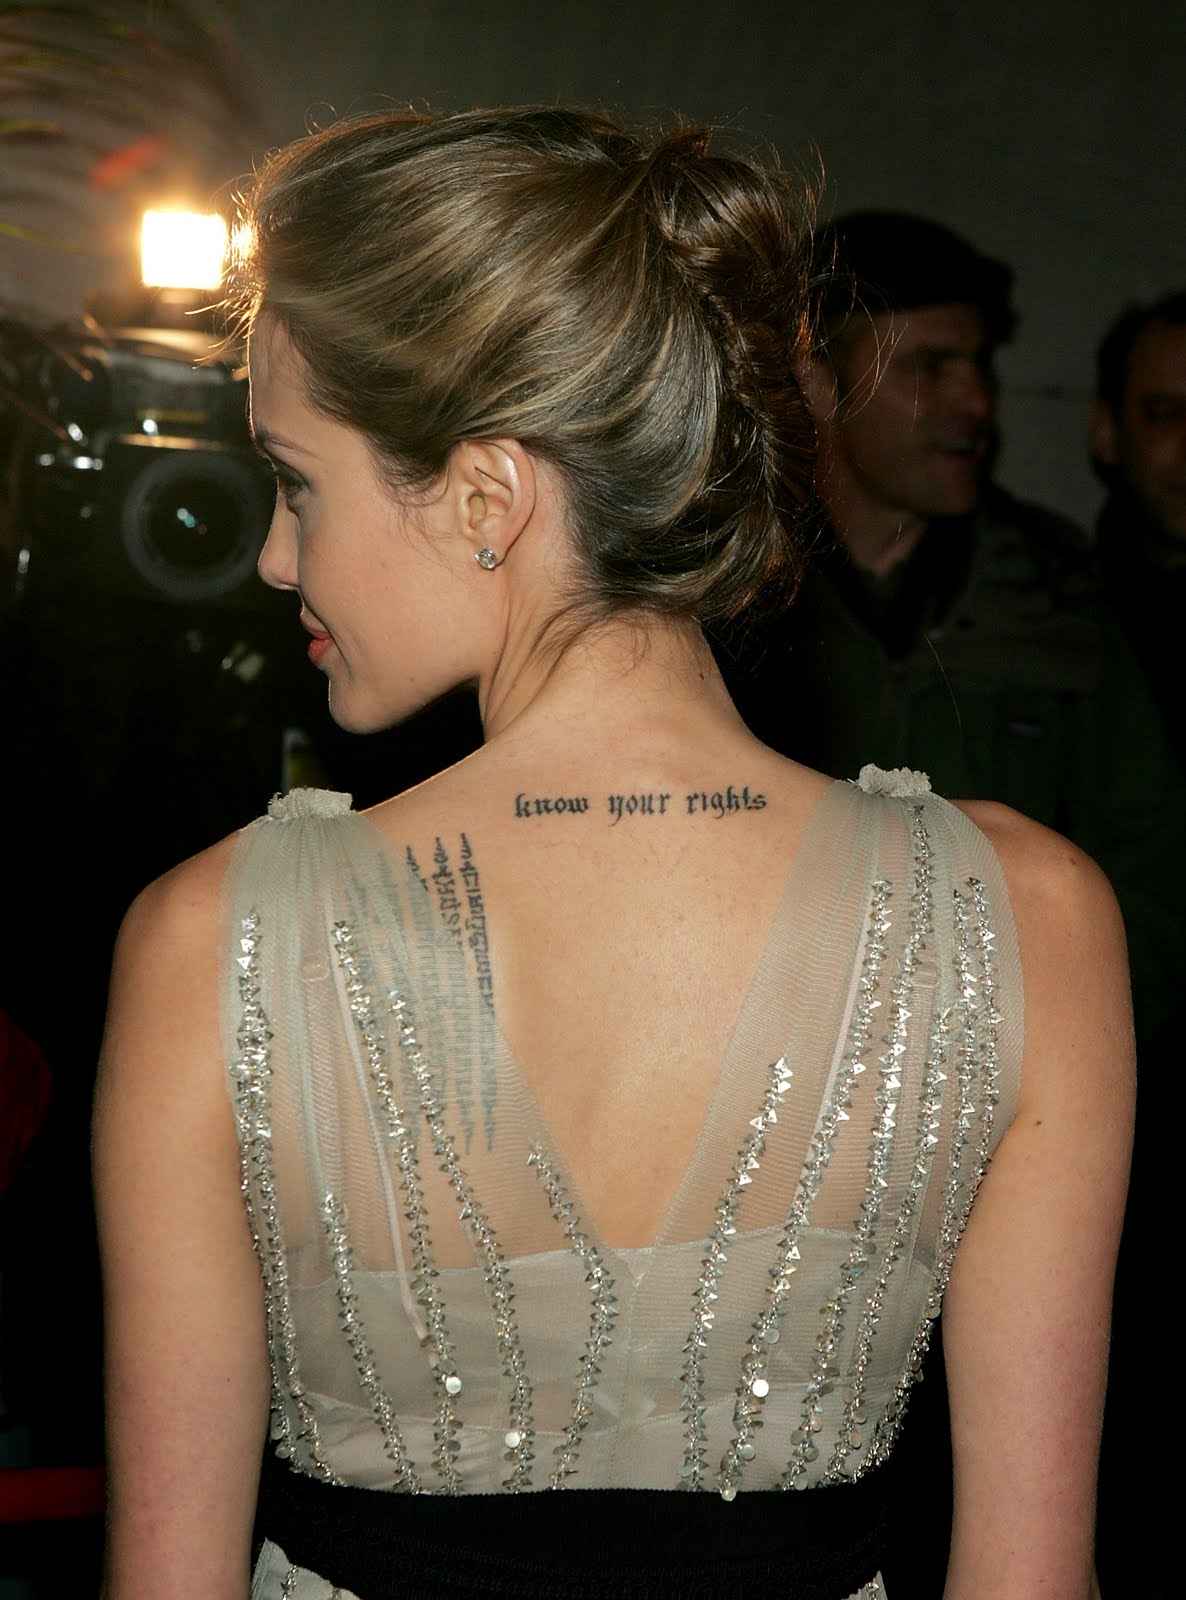 http://2.bp.blogspot.com/-Ai21U_5gFUI/Ts27rZcdMcI/AAAAAAAABtI/7pS-qCi8fyQ/s1600/back-angelina-back-of-neck-tattoos-35135.jpg